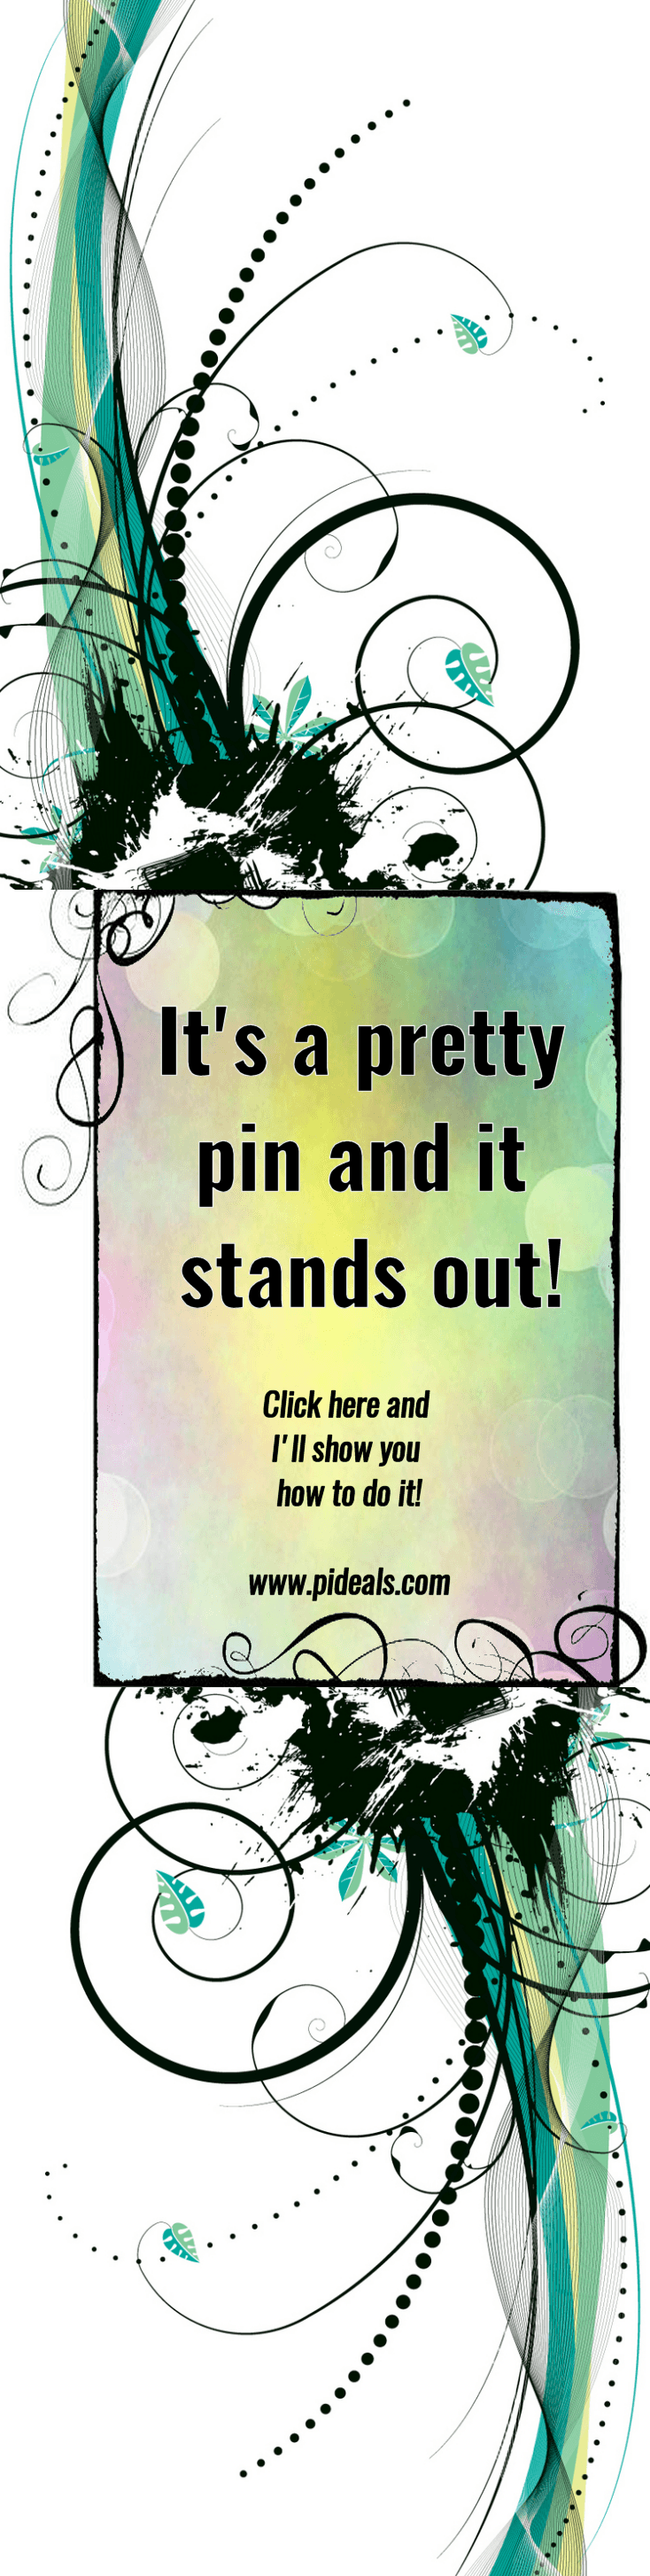 Example of a Popout Pin for Pinterest